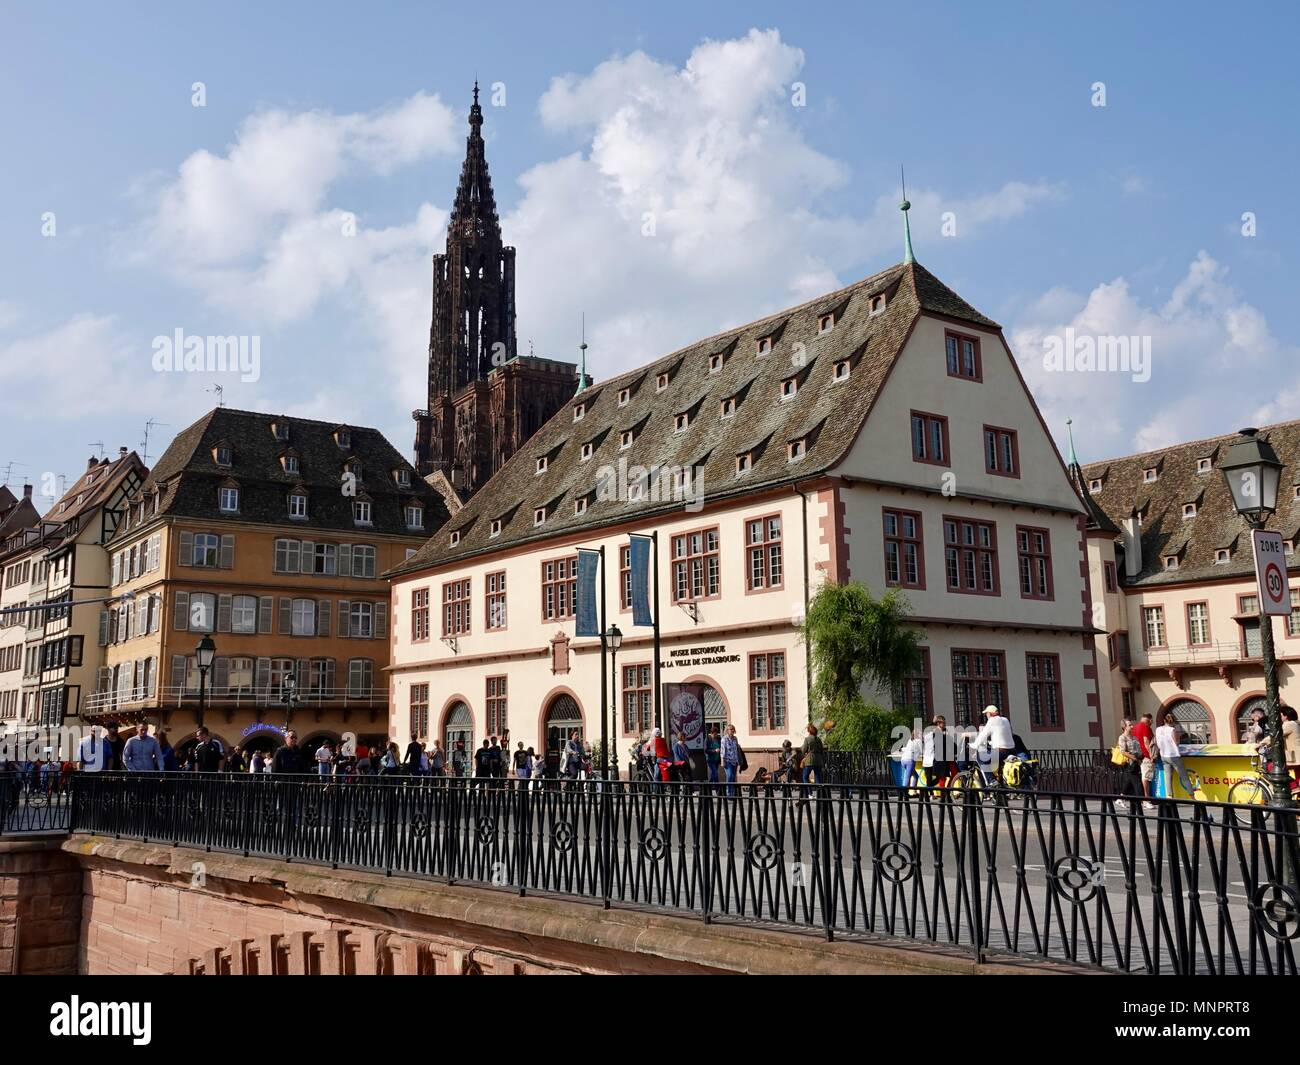 People walking in front of the Musee Historique de la Ville de Strasbourg with cathedral in background, Strasbourg, France - Stock Image